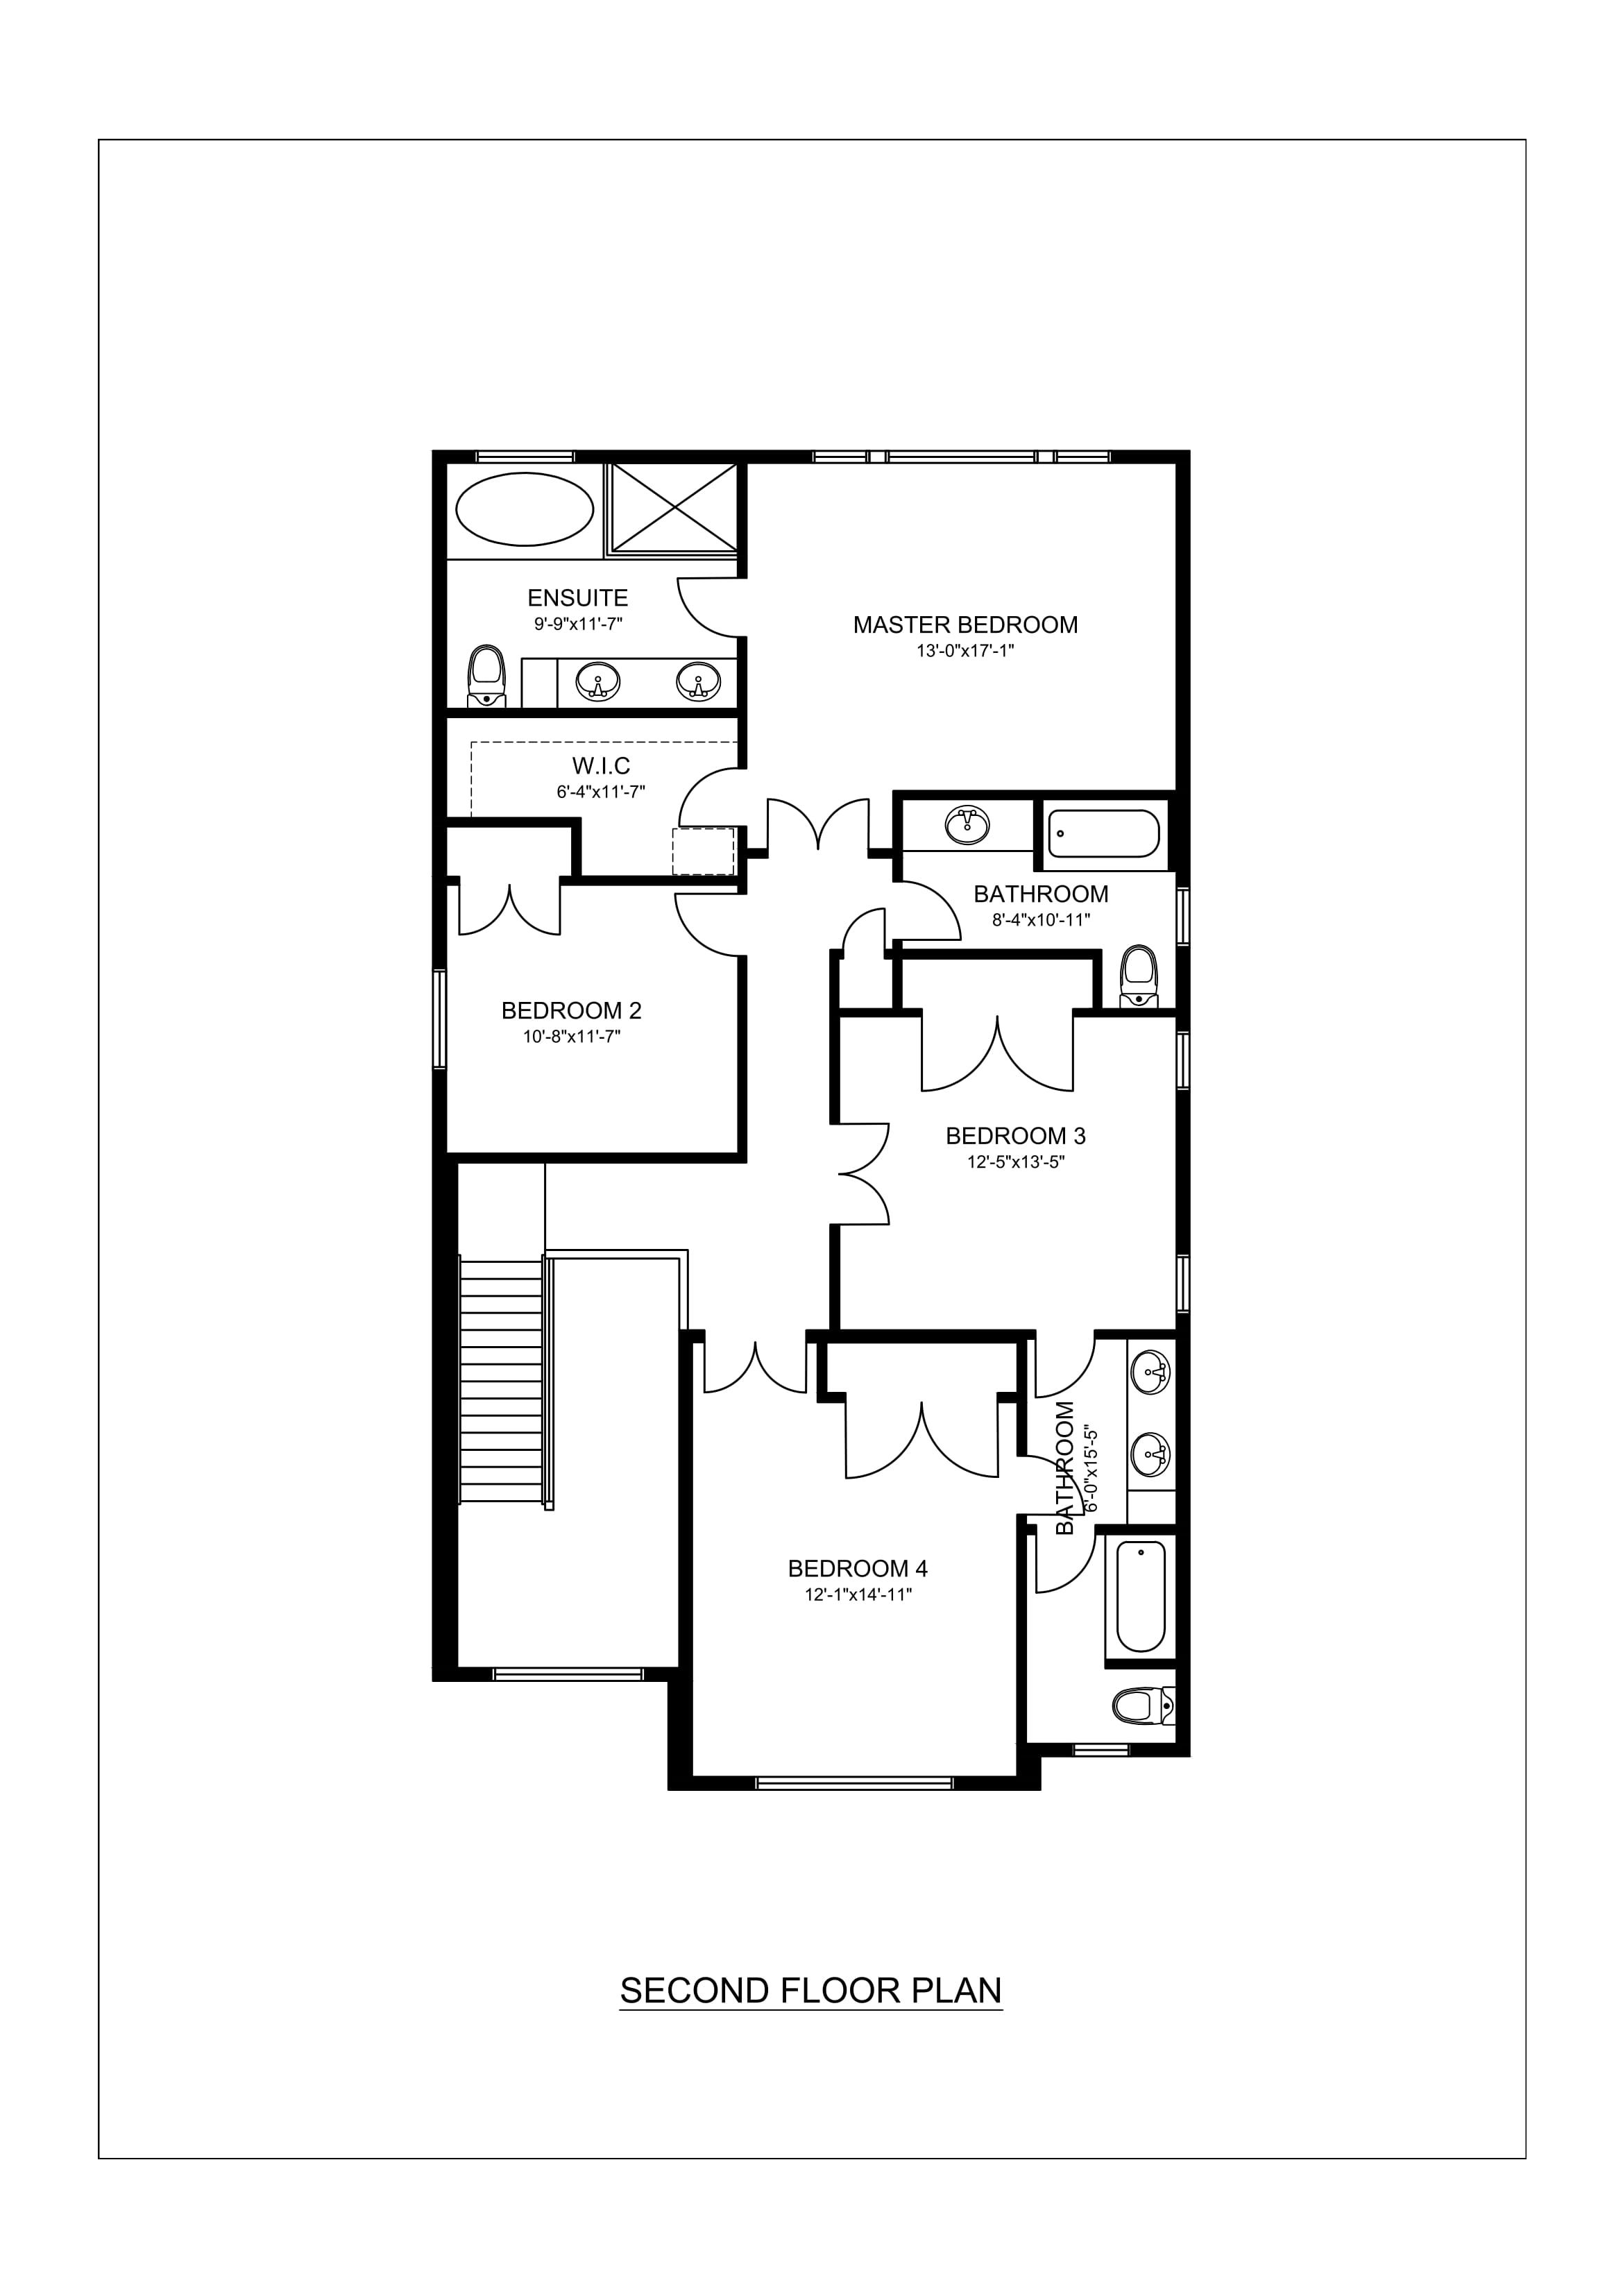 2d Floor Plan Services 2d Color Floor Plan 2d Floor Plan Creator 2d Floor Plan Design 2d Floor Plan Designe Floor Plan Design House Floor Plans Floor Plans